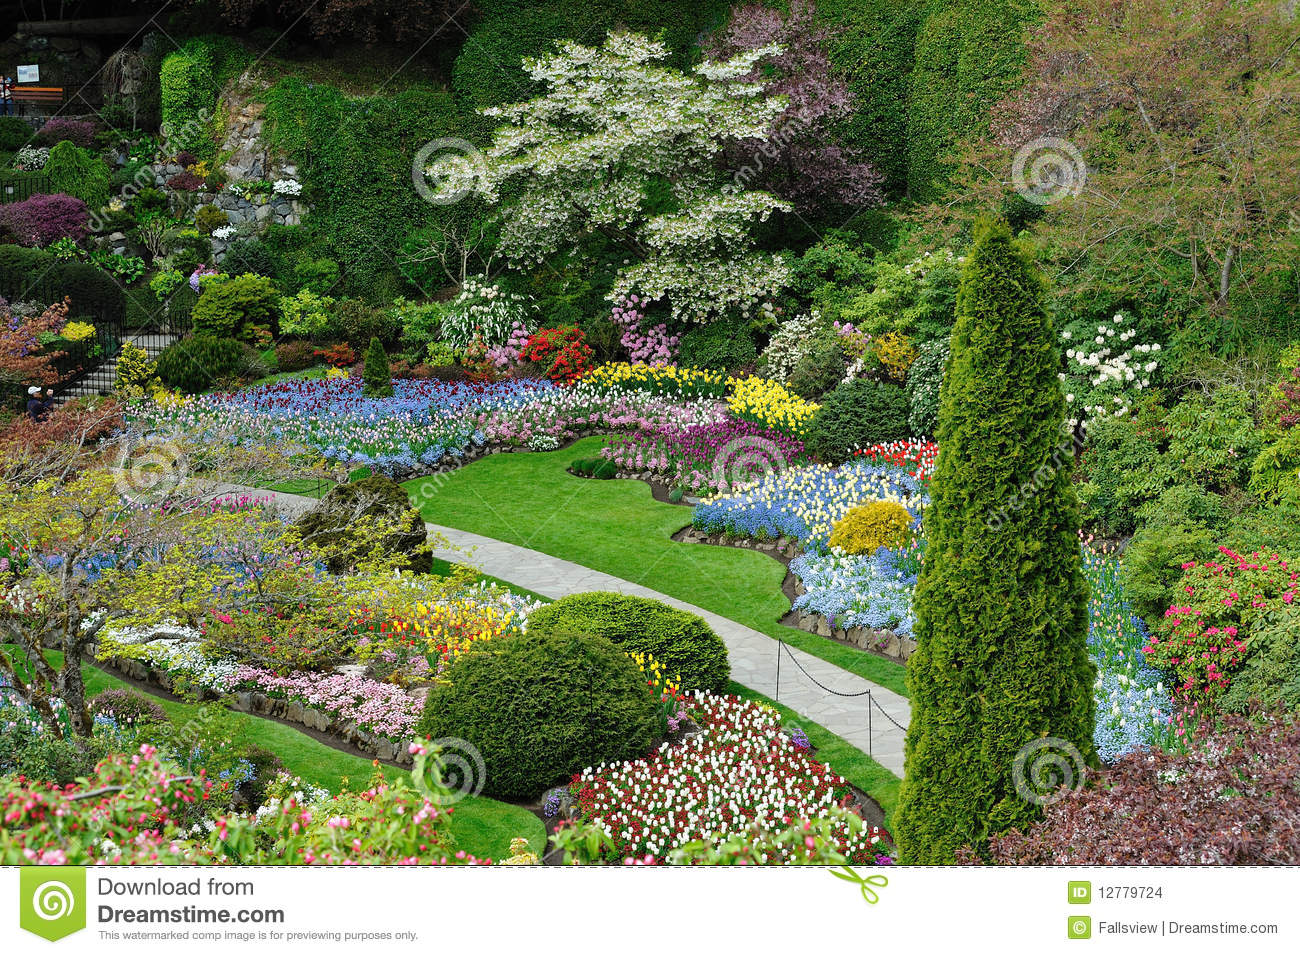 Am nagement de jardins images stock image 12779724 for Amenagement du jardin photo